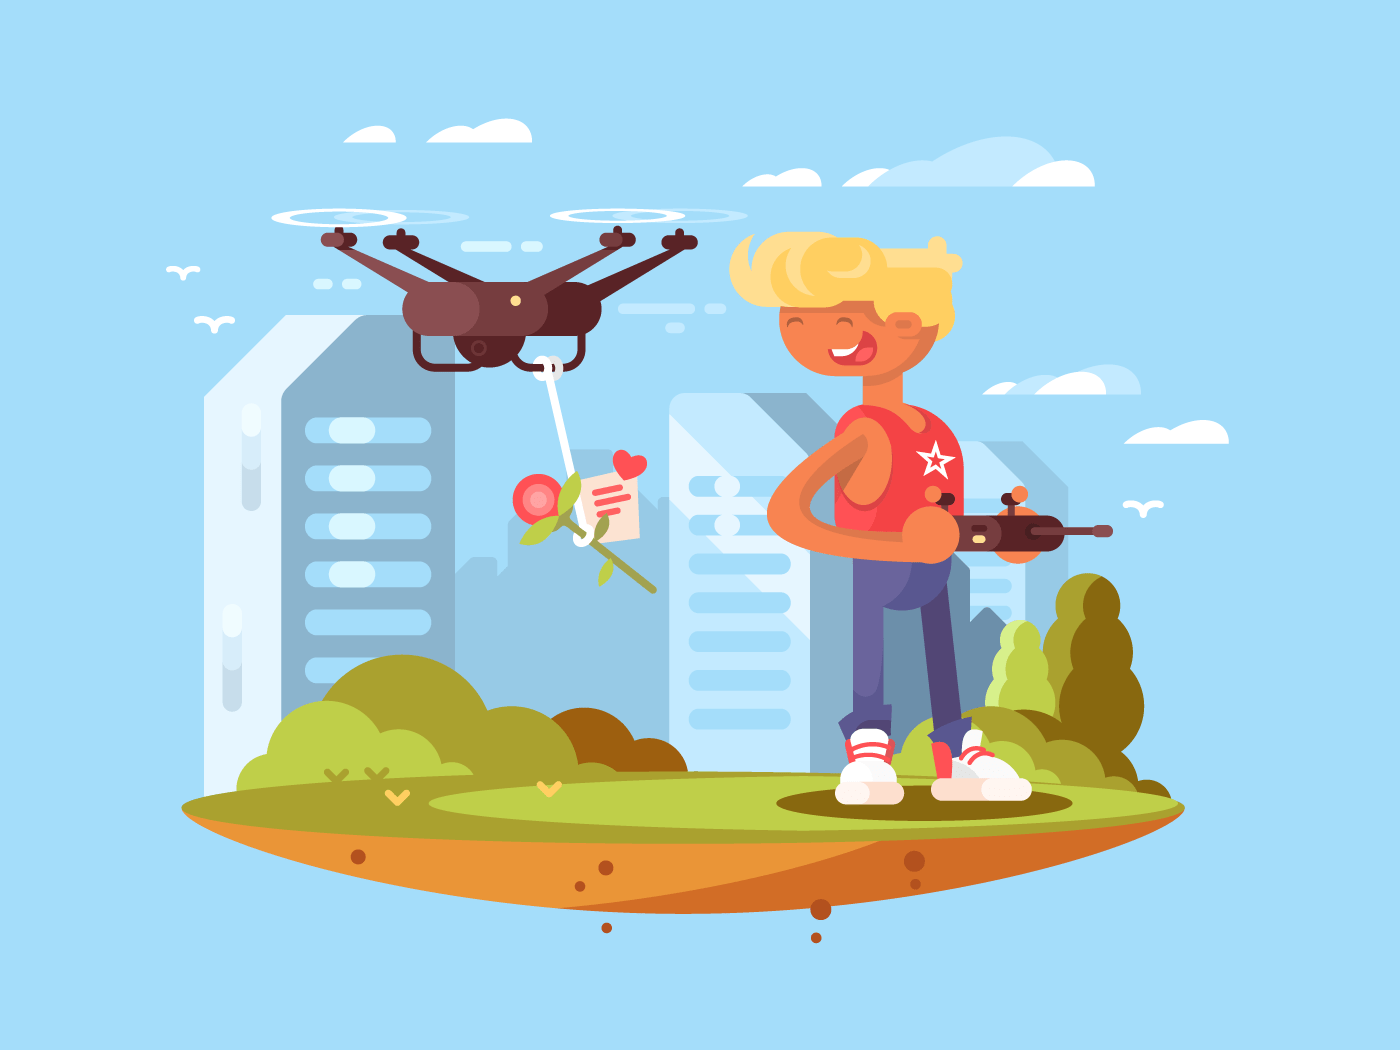 Delivery using quadrocopters flat vector illustration